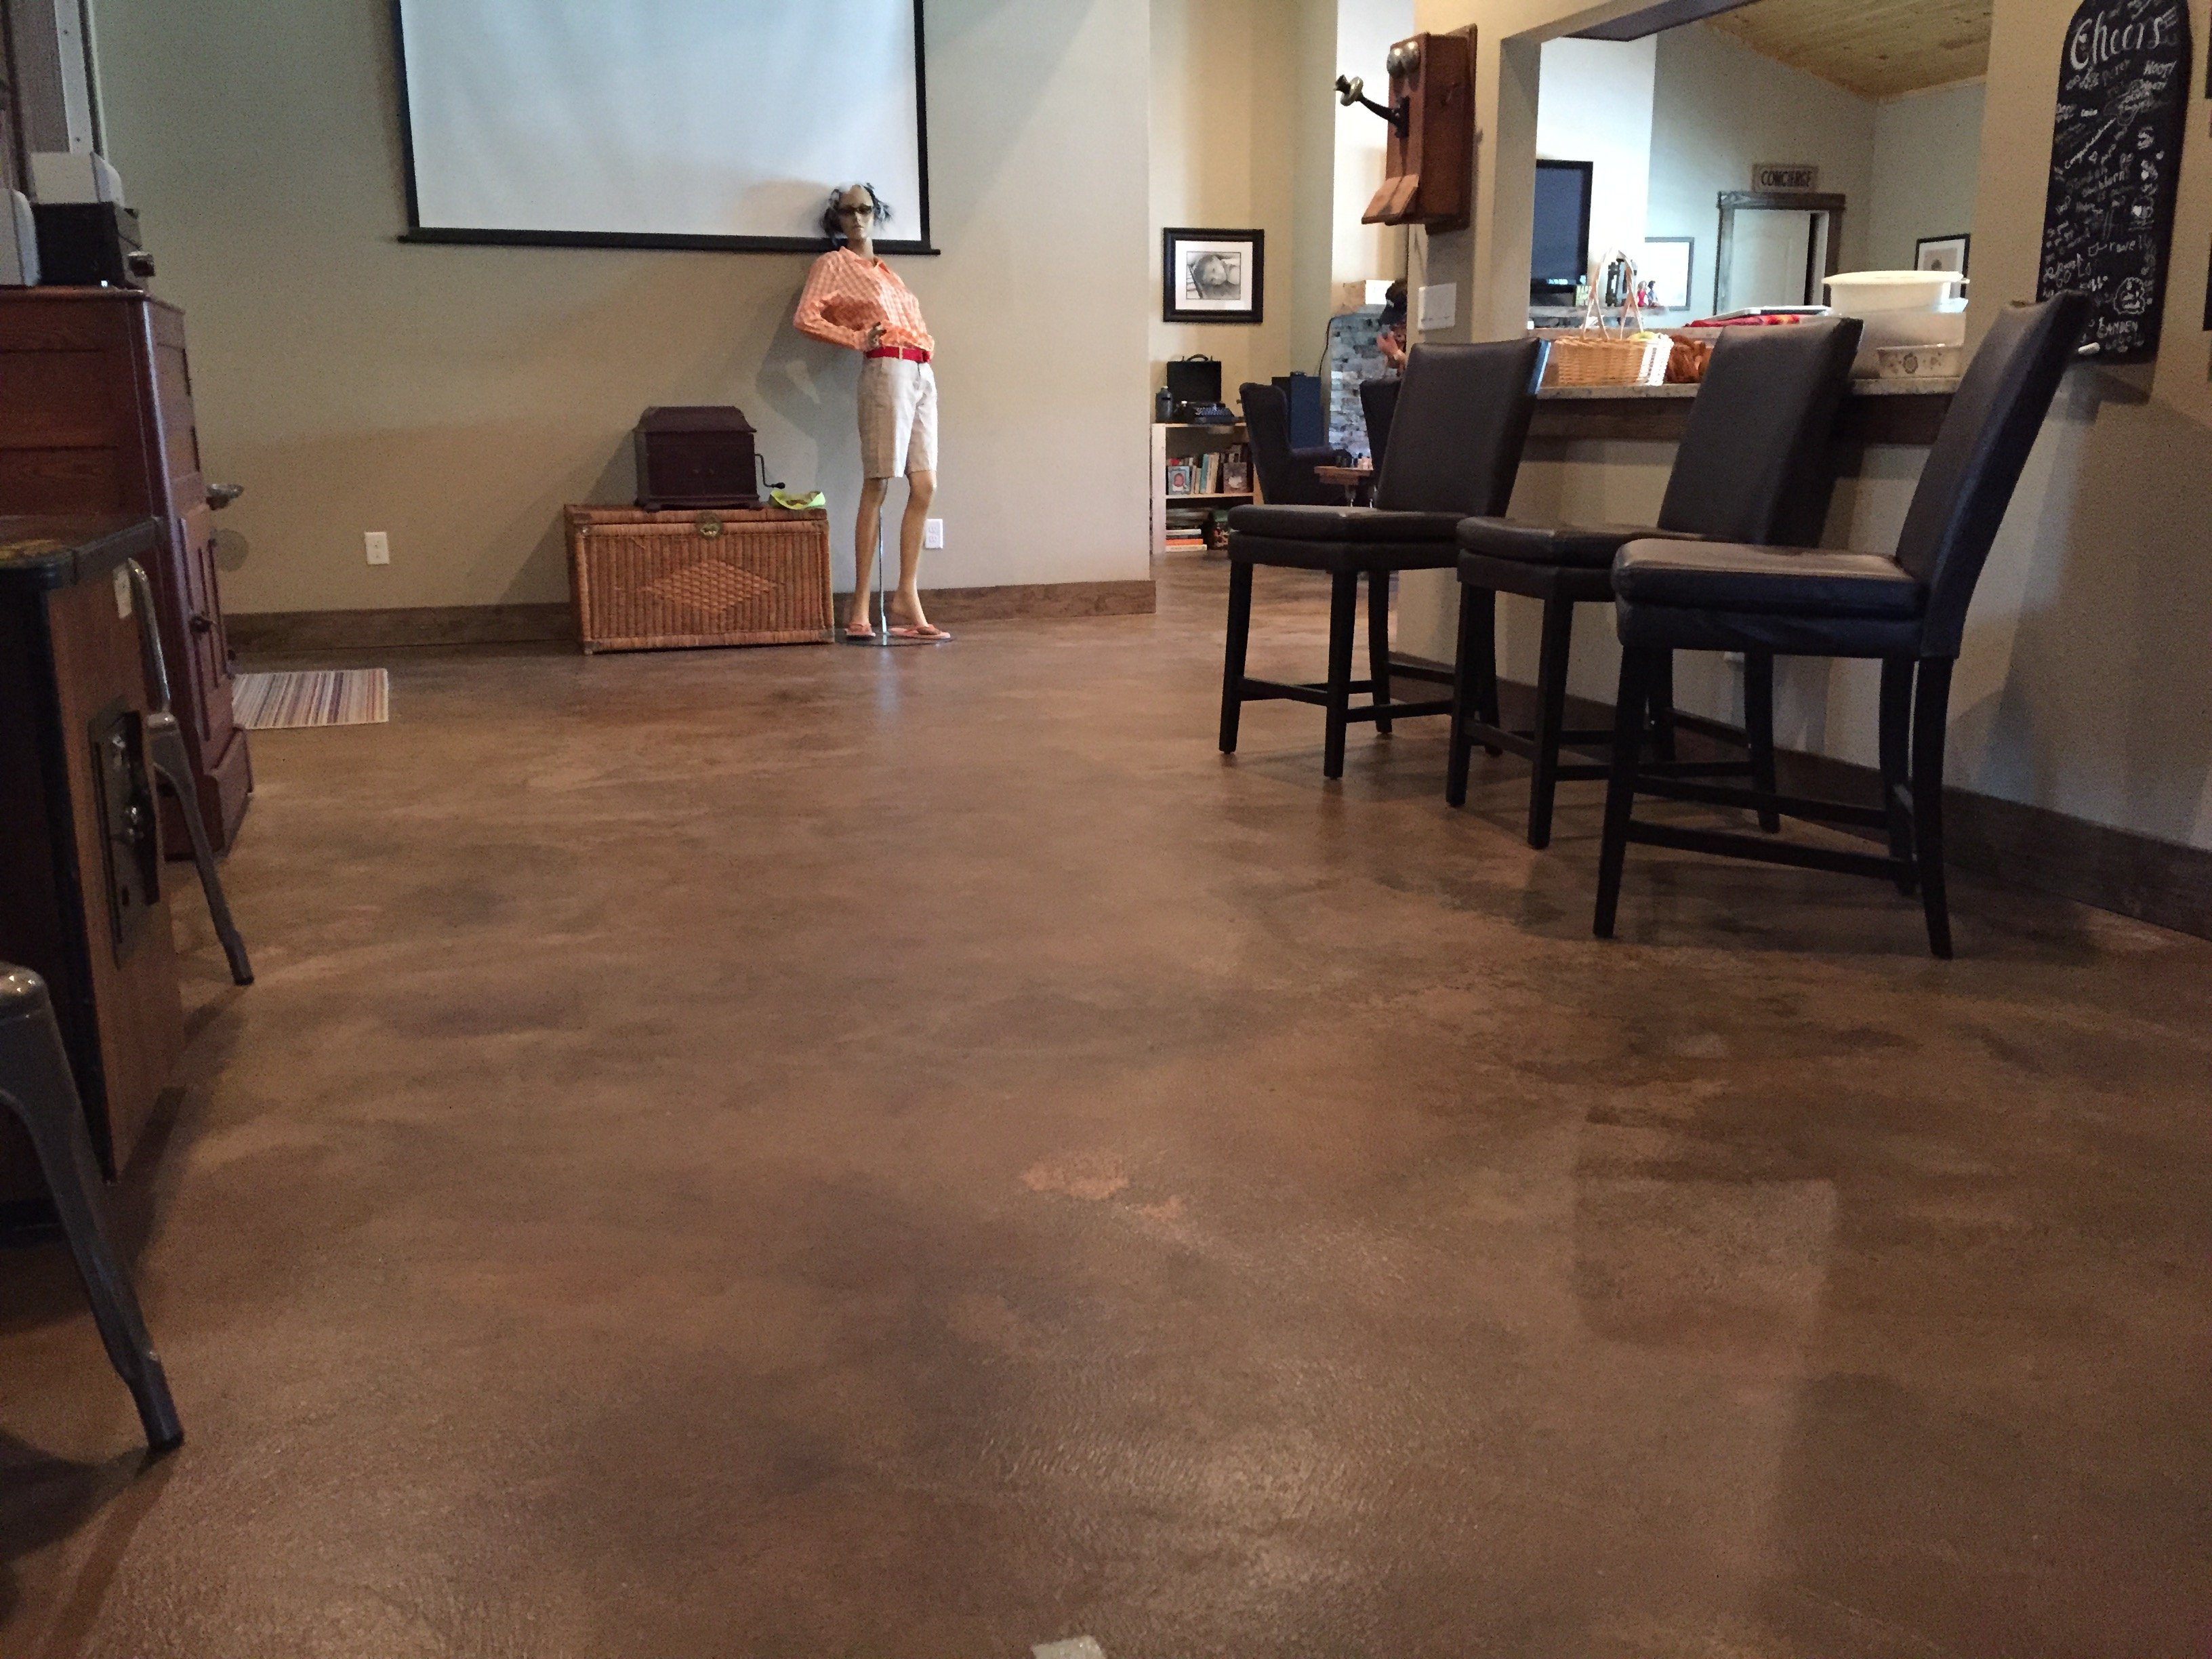 Decorative concrete stain an alternative to carpet - Why you should consider concrete staining for your home ...